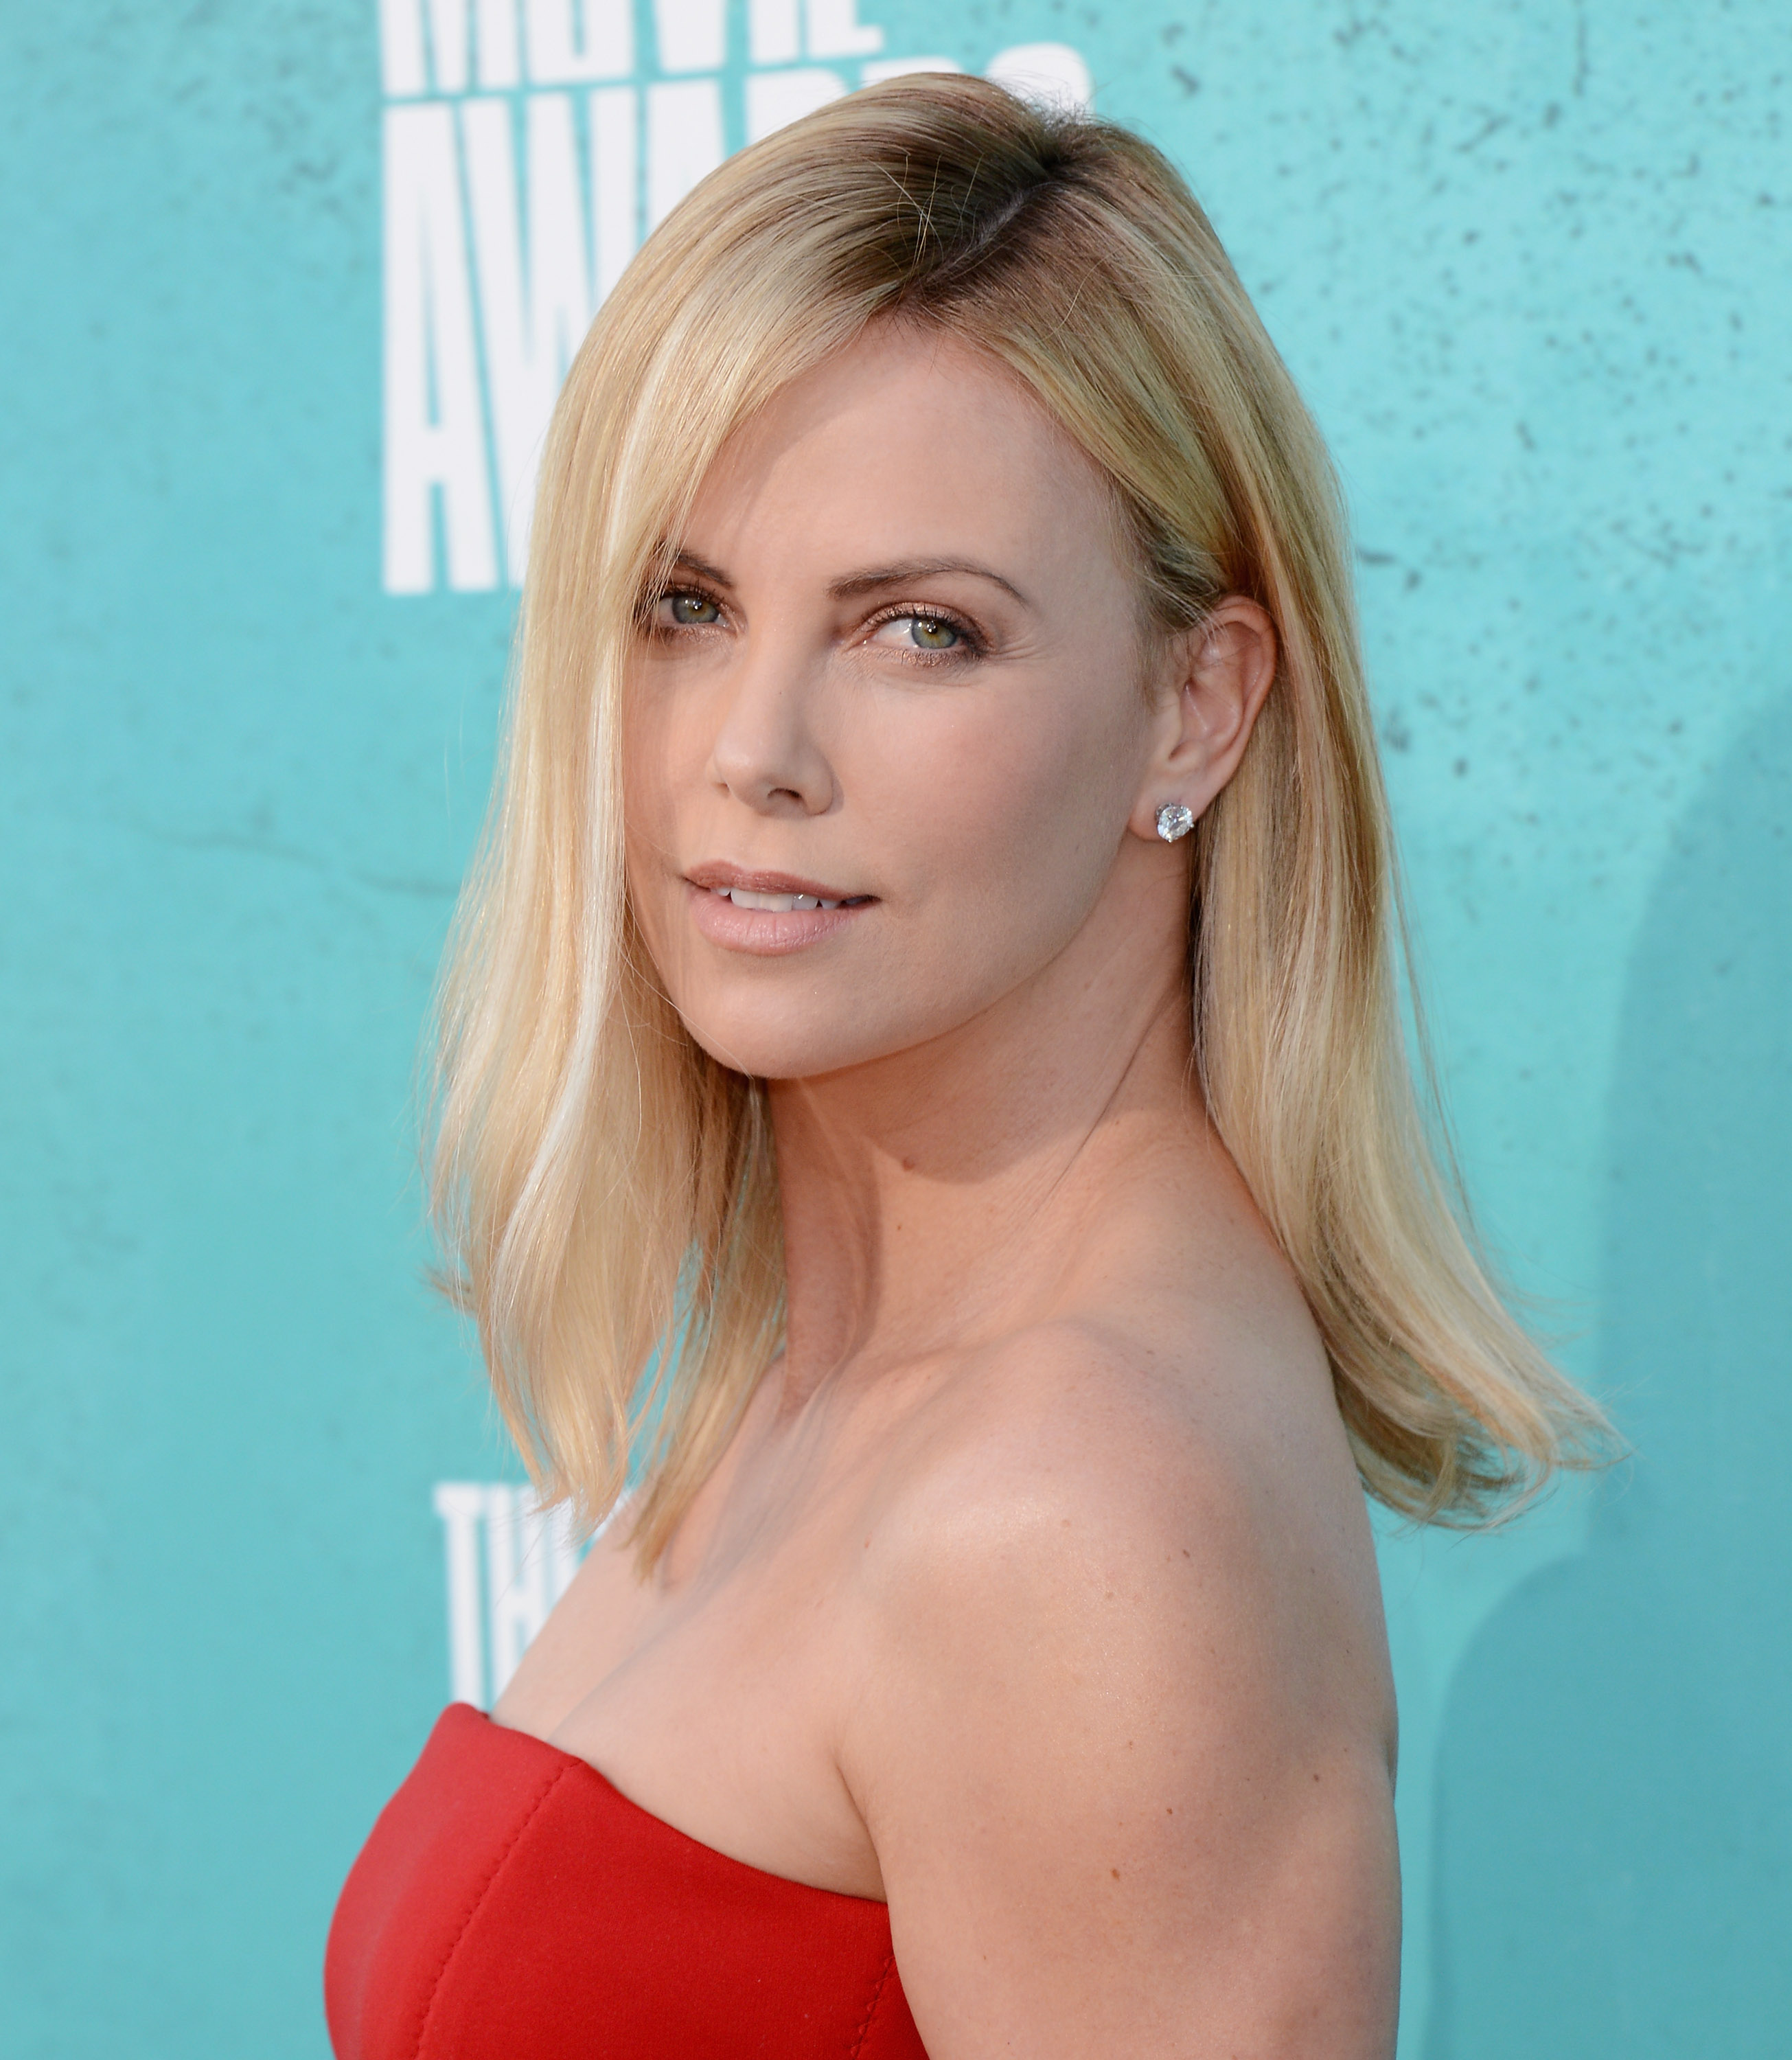 Charlize Theron Ny Blondes: Charlize Theron Hair Color 2012